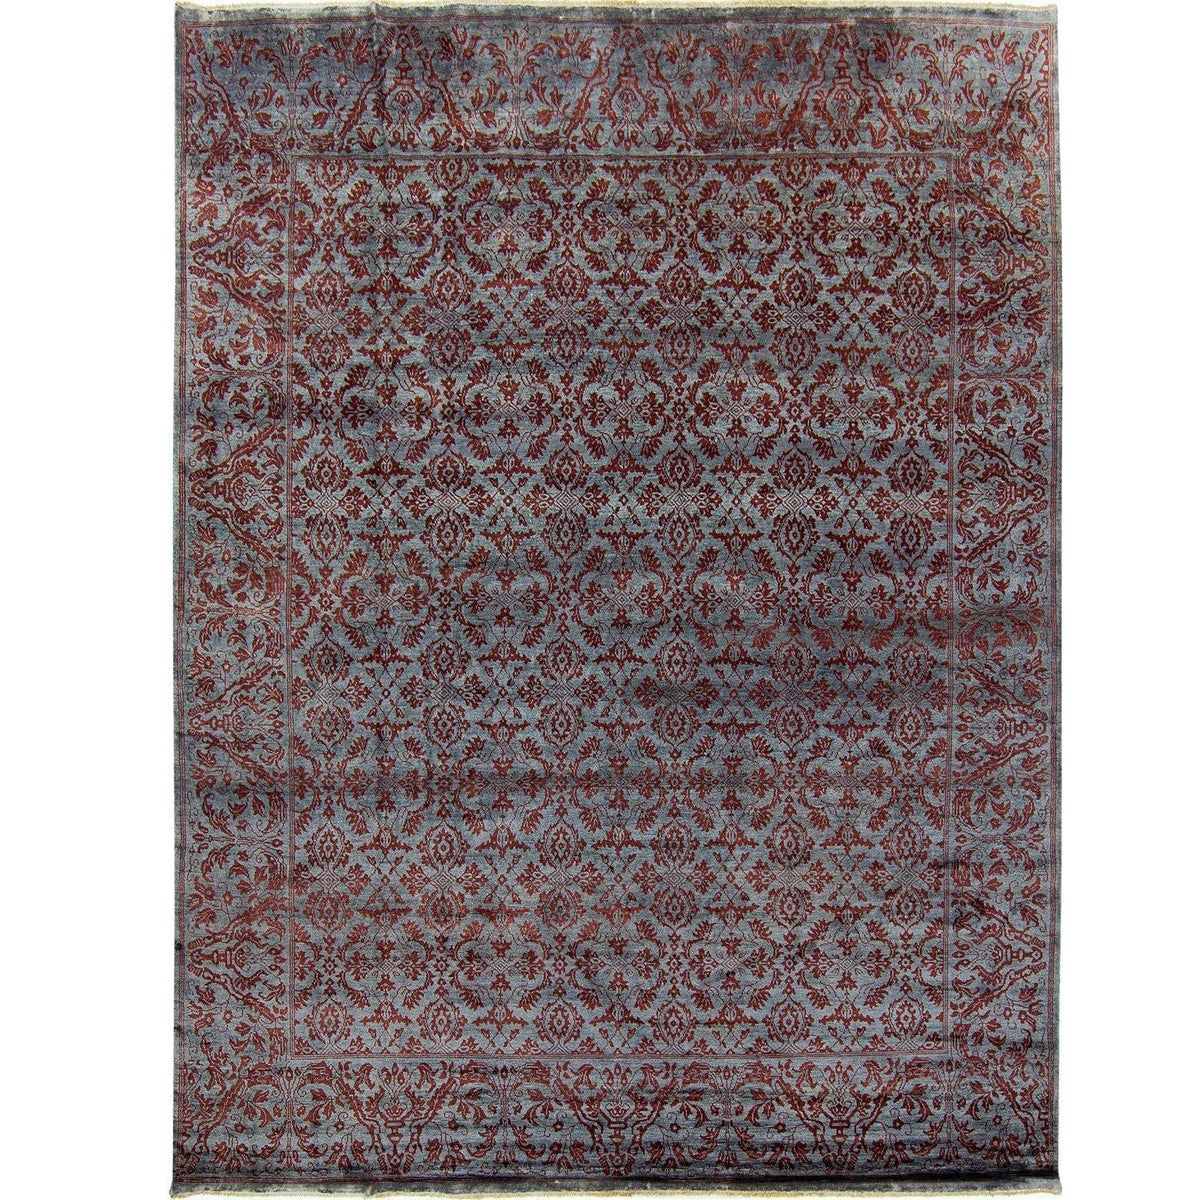 Fine Contemporary Hand-knotted NZ Wool Rug 275cm x 368cm Persian-Rug | House-of-Haghi | NewMarket | Auckland | NZ | Handmade Persian Rugs | Hand Knotted Persian Rugs